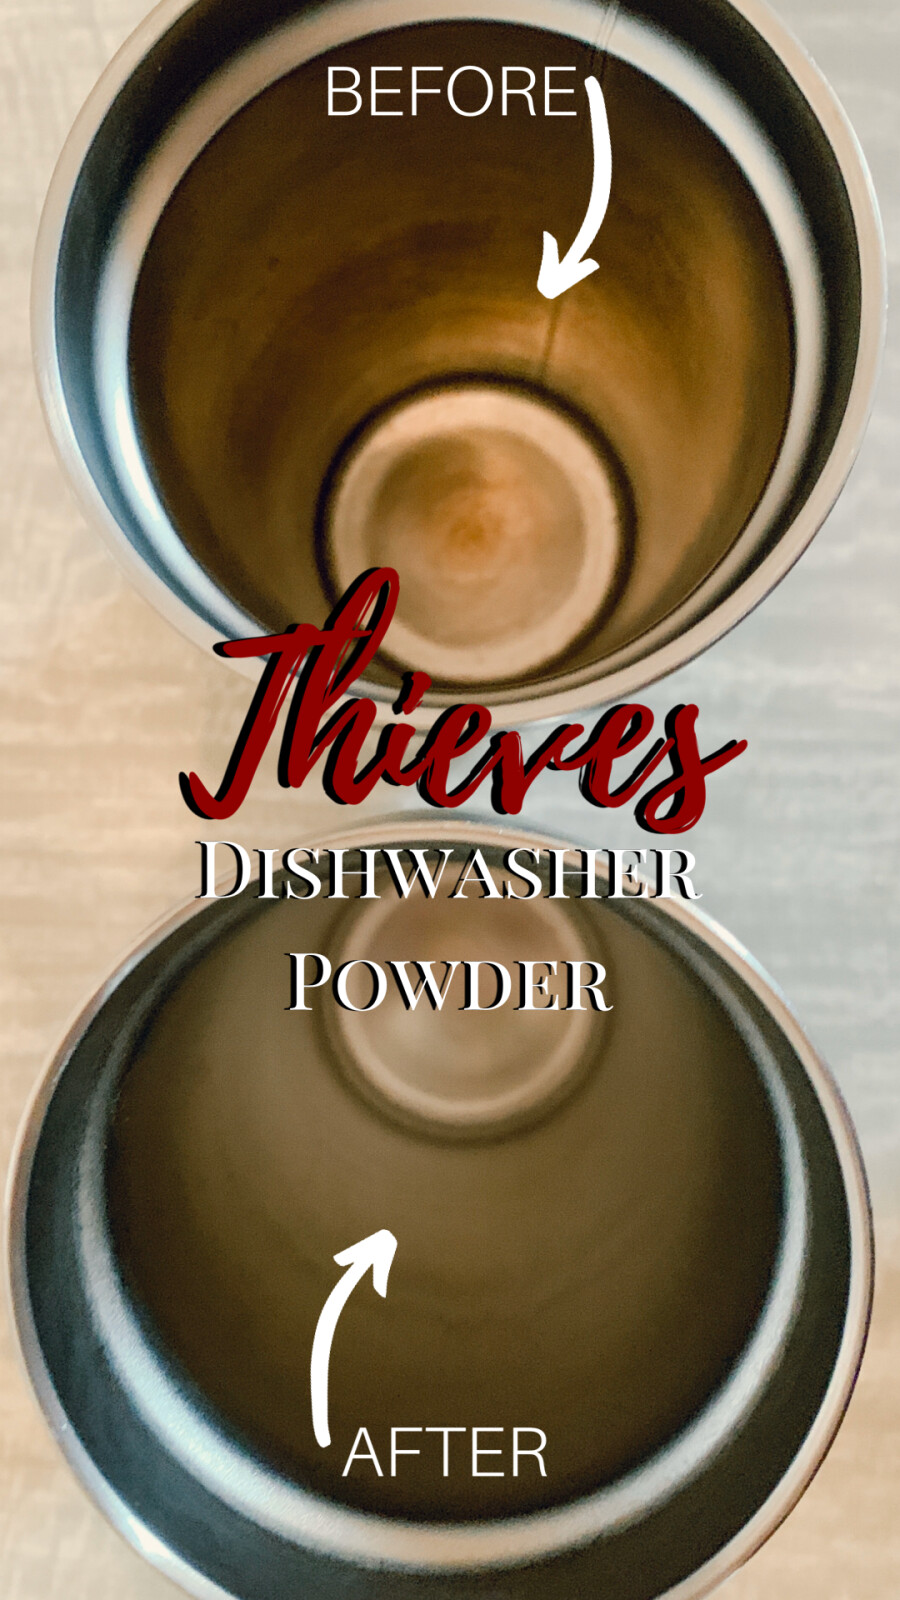 Reasons You Probably Need Thieves Dishwasher Powder...  Even if YOU Don't Have a Dishwasher